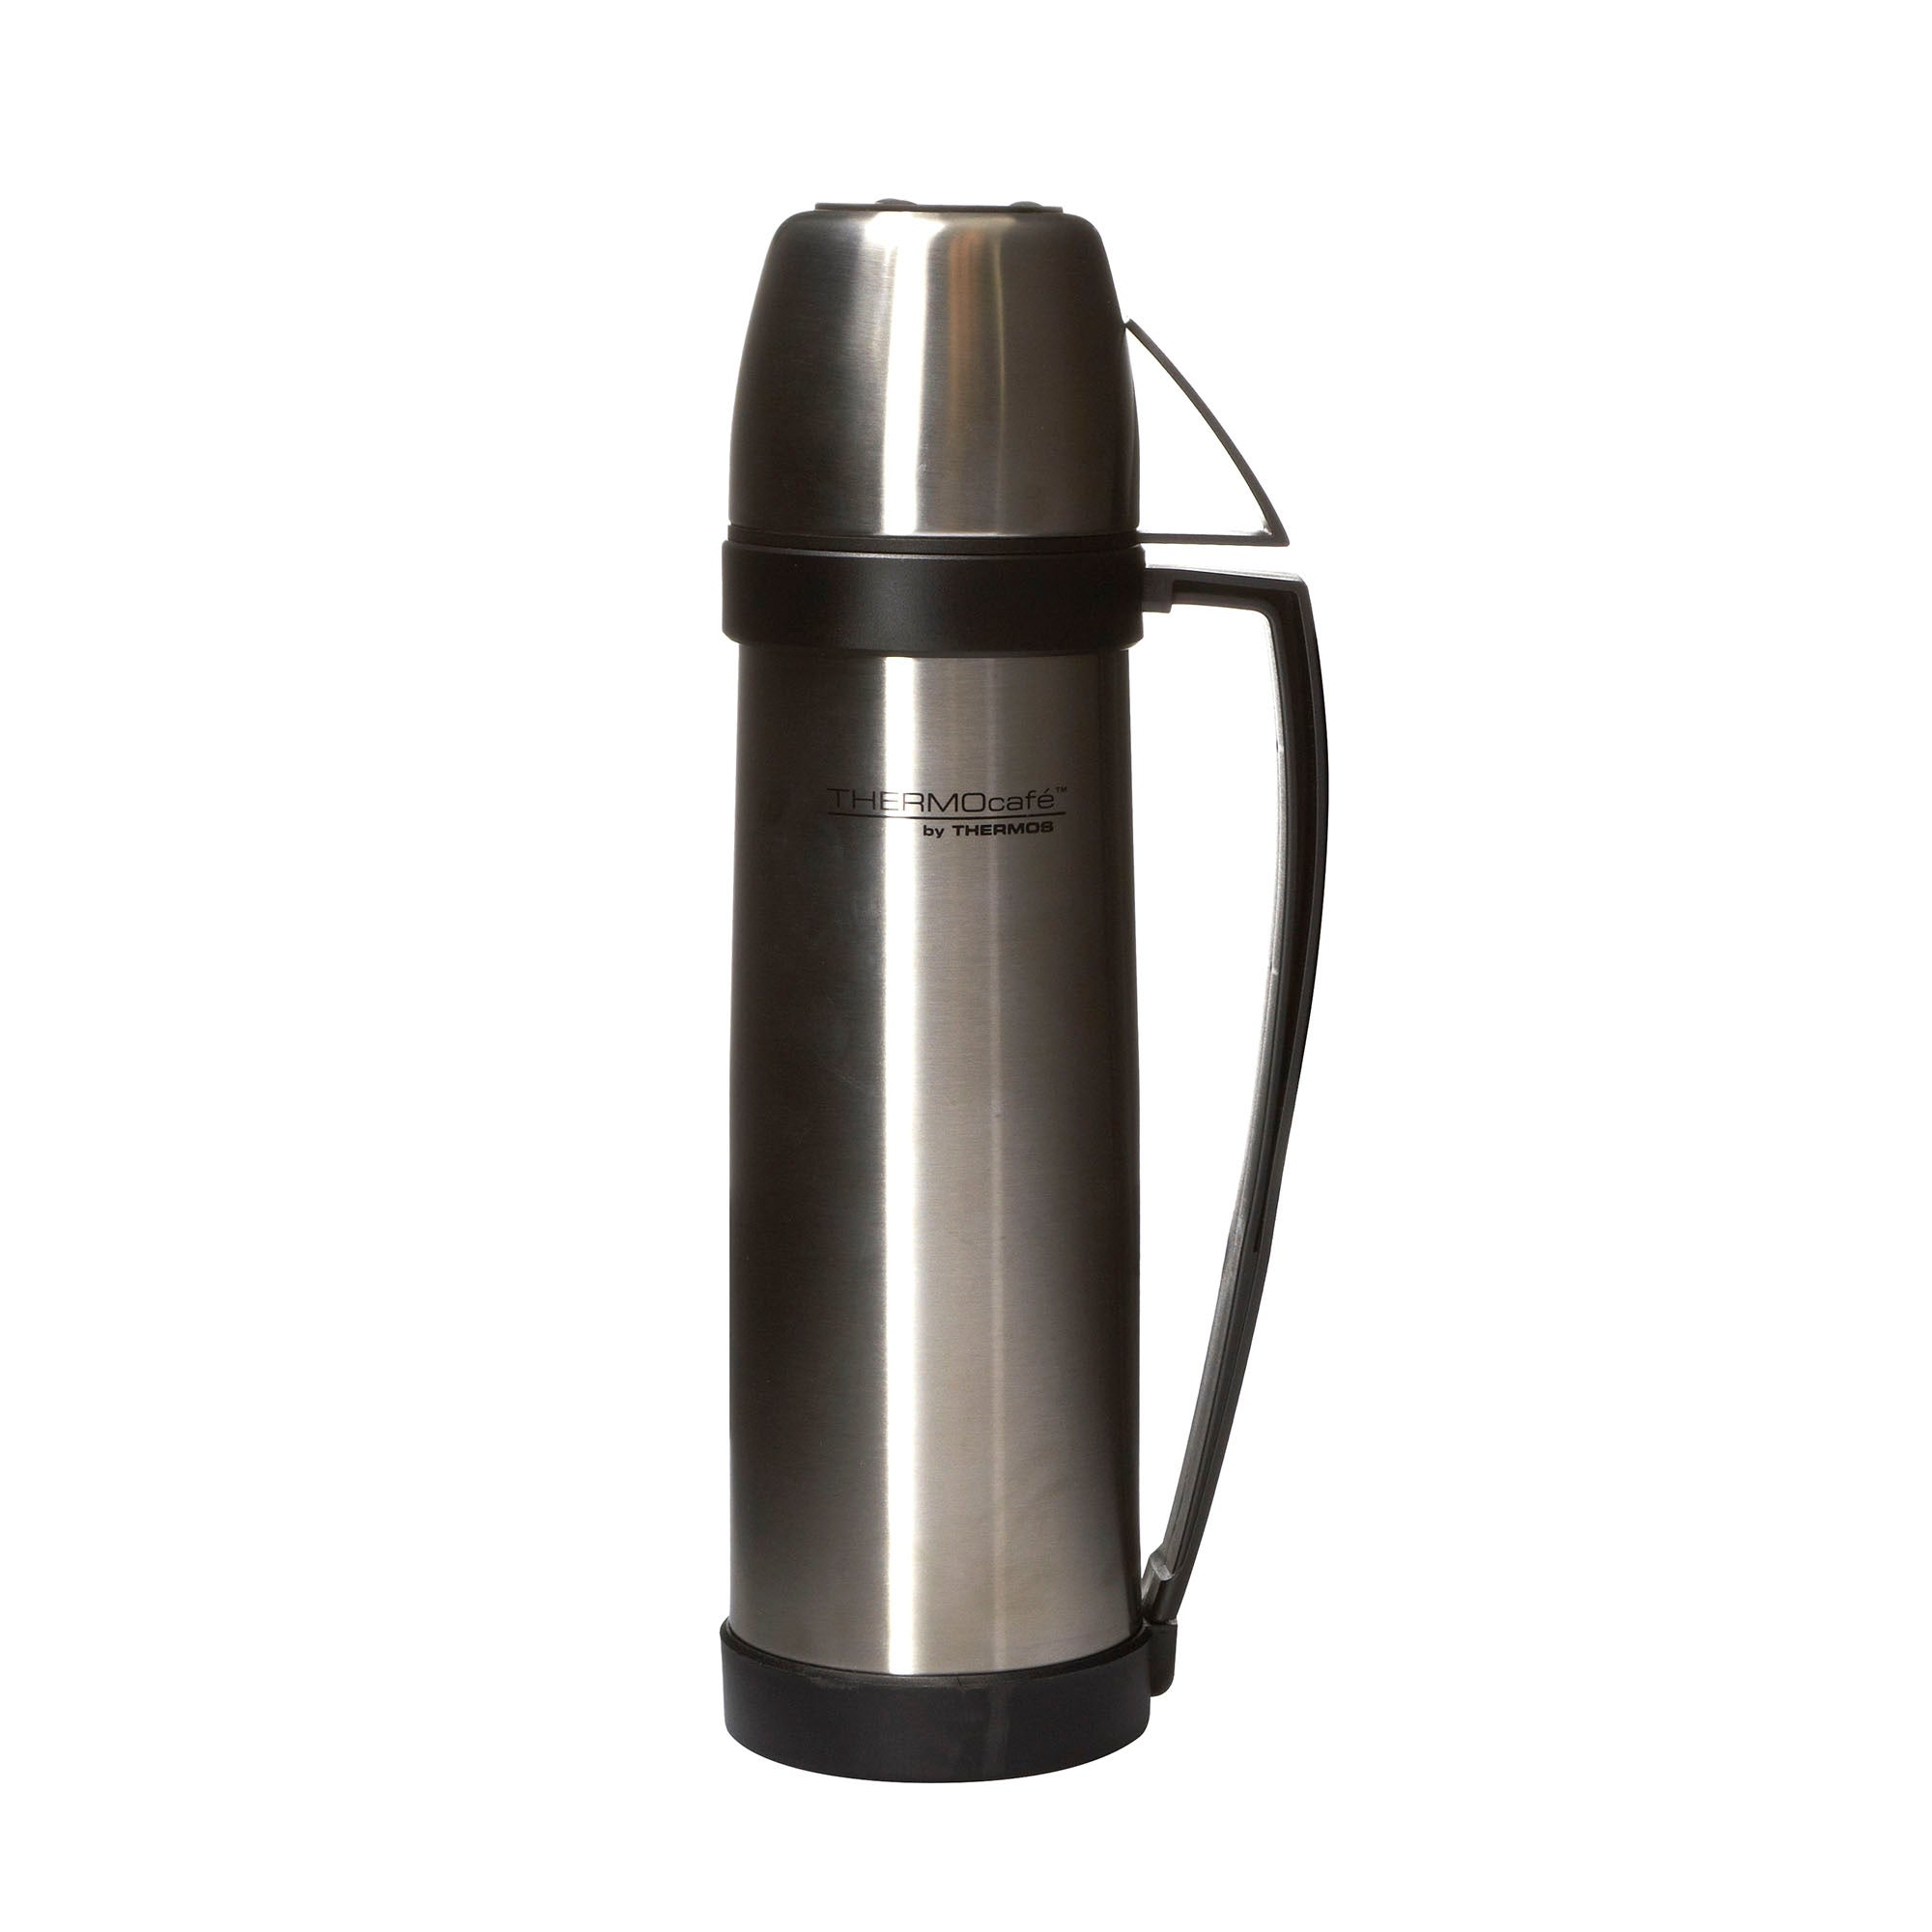 ThermoCafe 1 Litre Stainless Steel Flask